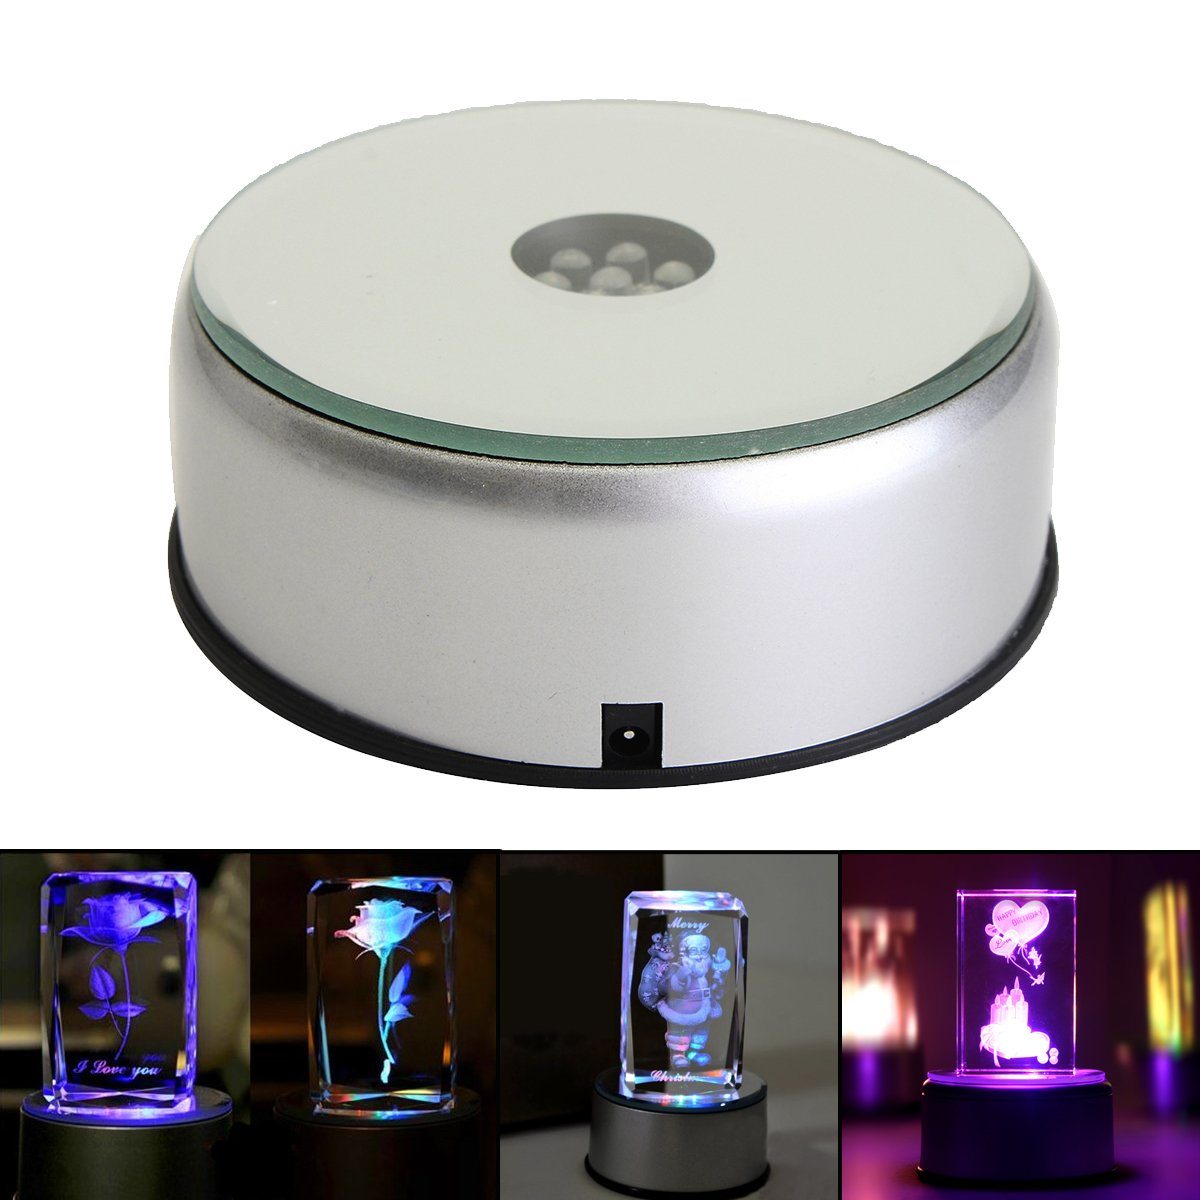 Caveen Display Stand 360 Rotating Turntable 7 Colored LED Light Crystal Display Stand Base Collections Figurine Jewelry Display Stand - Silver